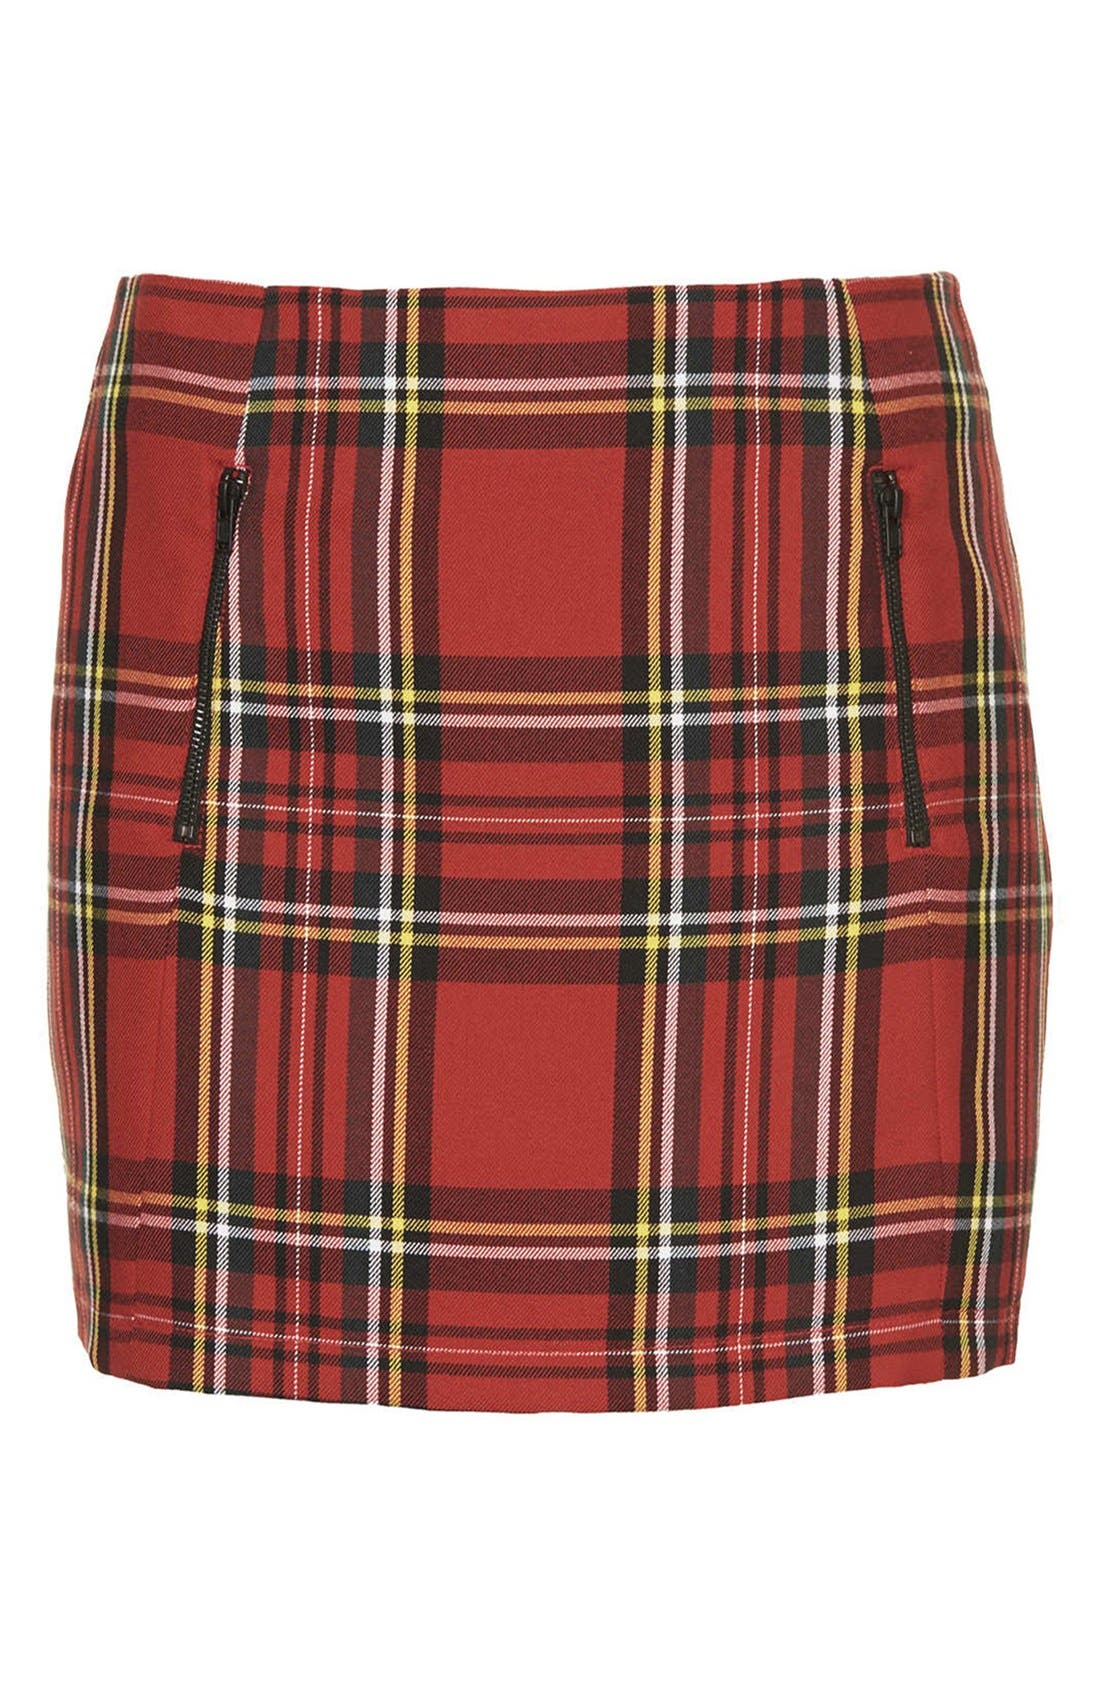 Alternate Image 3  - Topshop Tartan Plaid Skirt